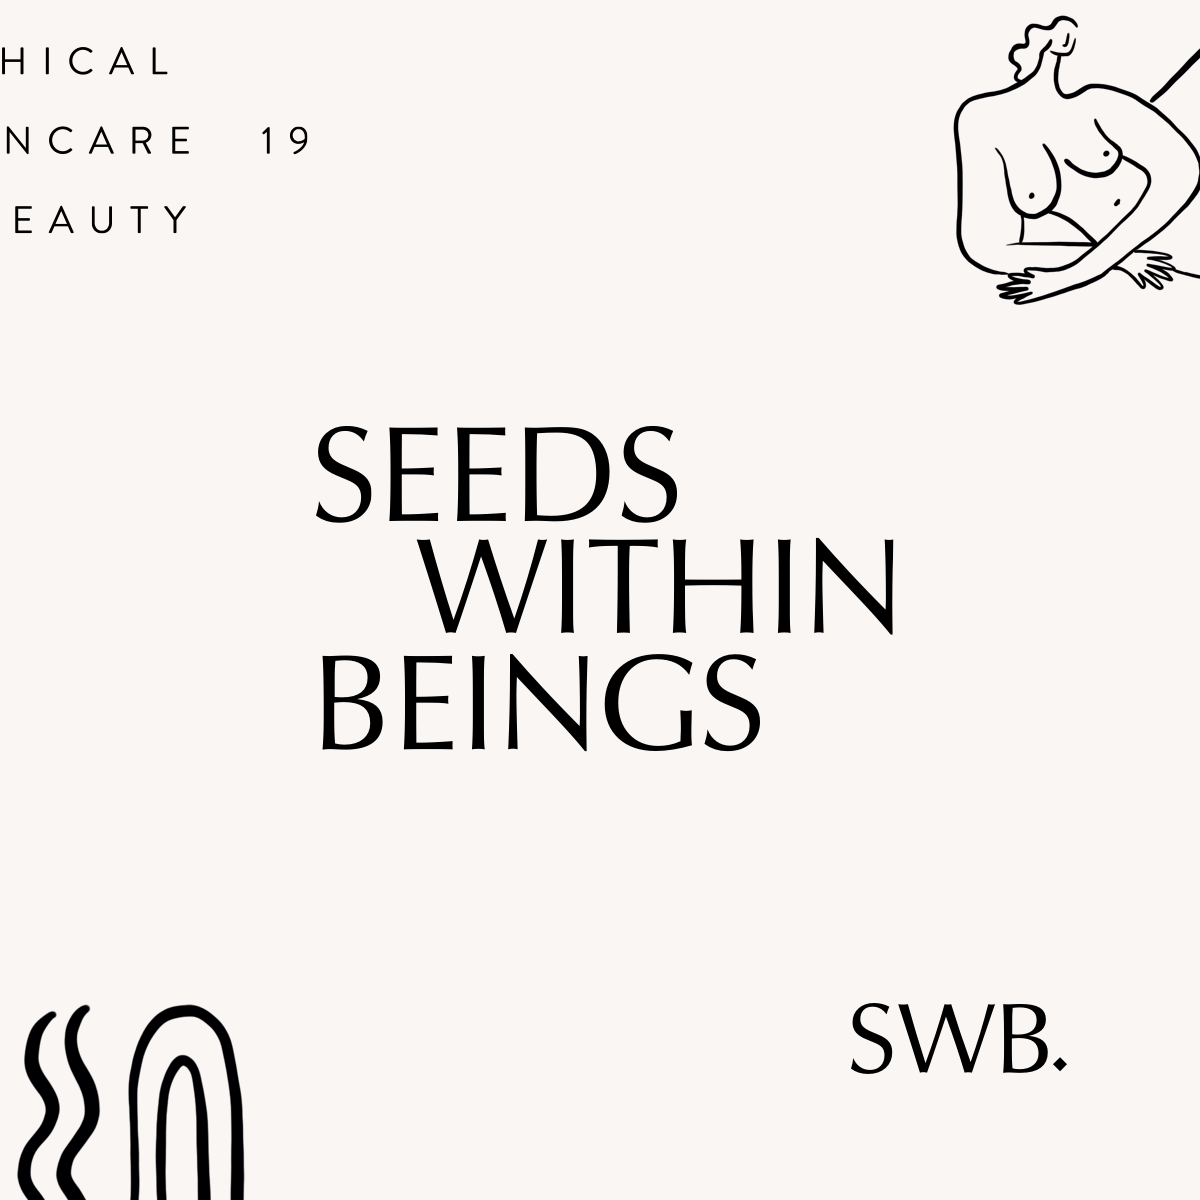 vegan-skincare-branding-ethical-design-agency-betsy-francis-graphic-designer-sustainable-wellbeing-illustration-.png